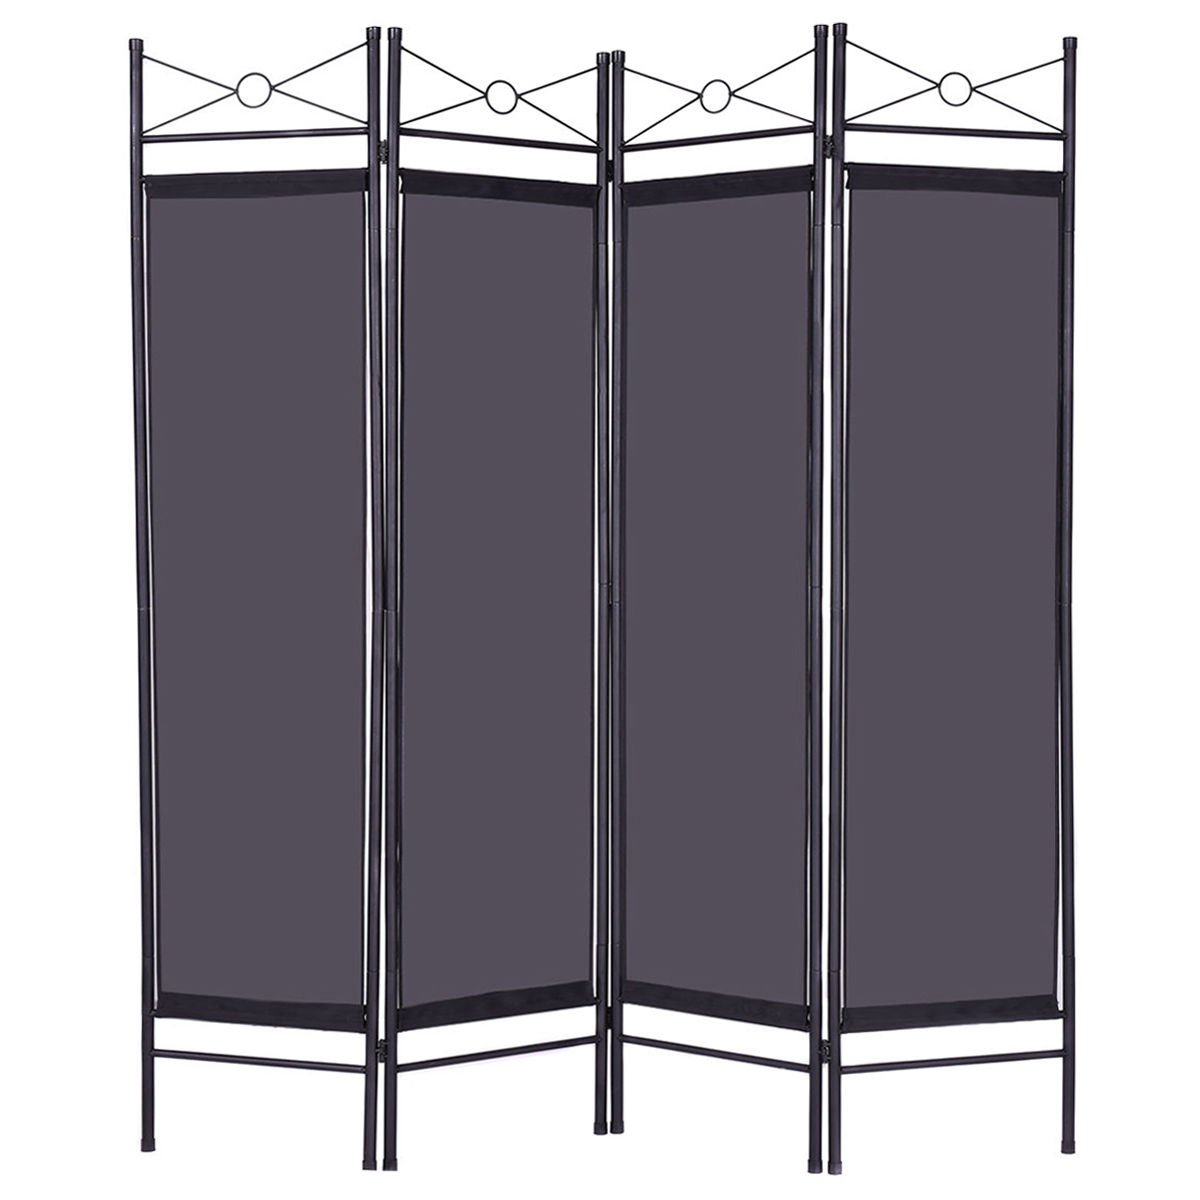 Black 4 Panel Room Divider Privacy Screen Home Office Fabric Metal Frame + FREE E - Book